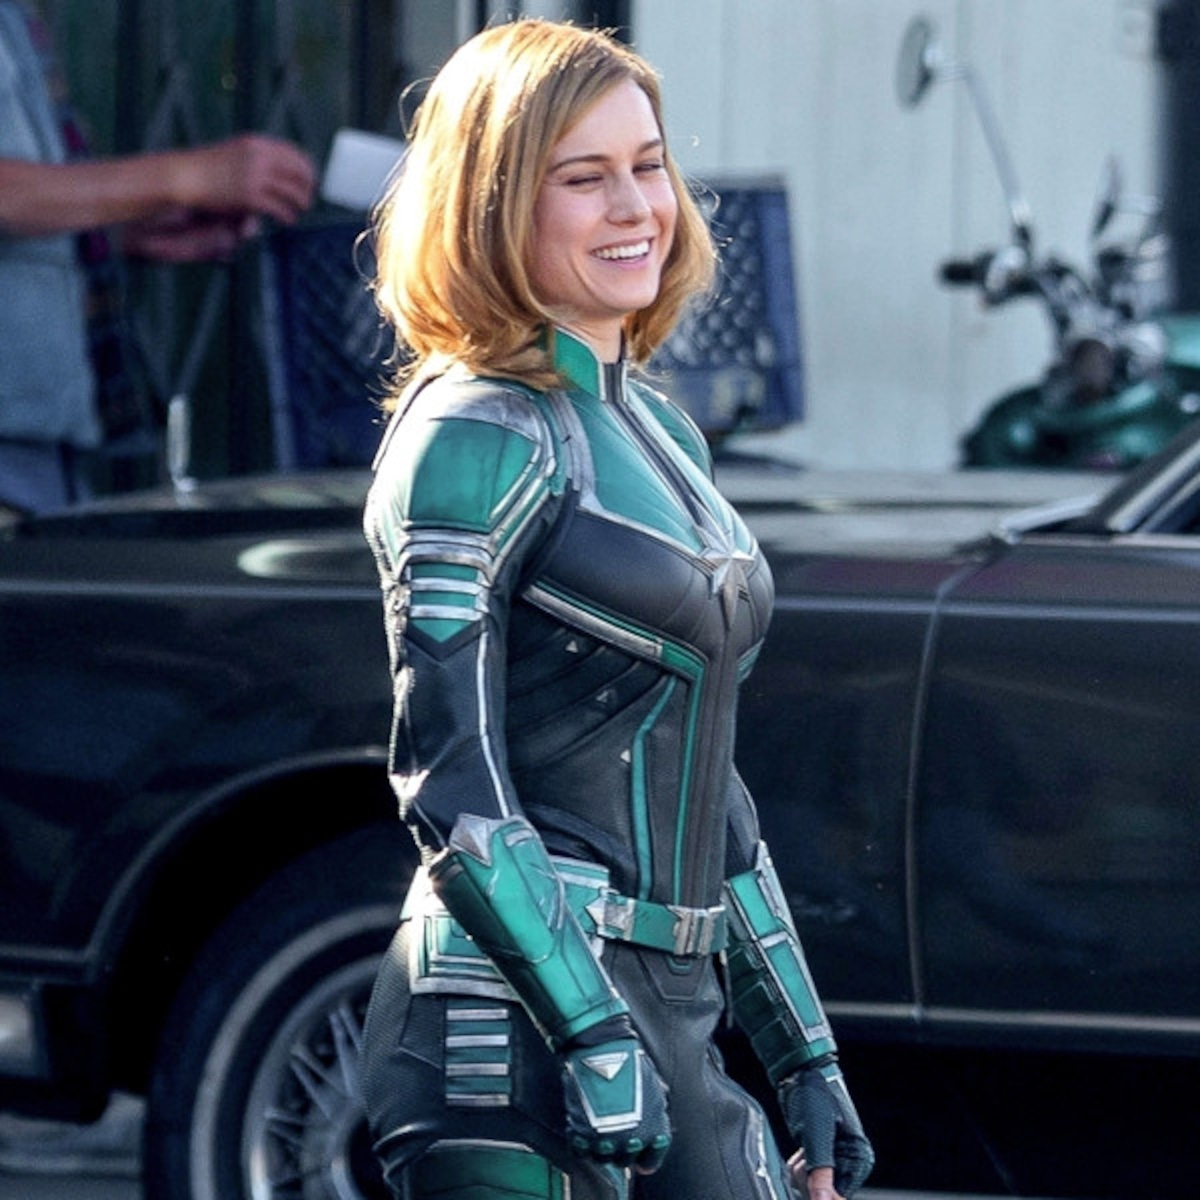 Brie Larson S Captain Marvel Costume Isn T What Fans Expected E Online The black and green color scheme looked very different from the usual red, blue, and yellow that danvers wears in the comic books. brie larson s captain marvel costume